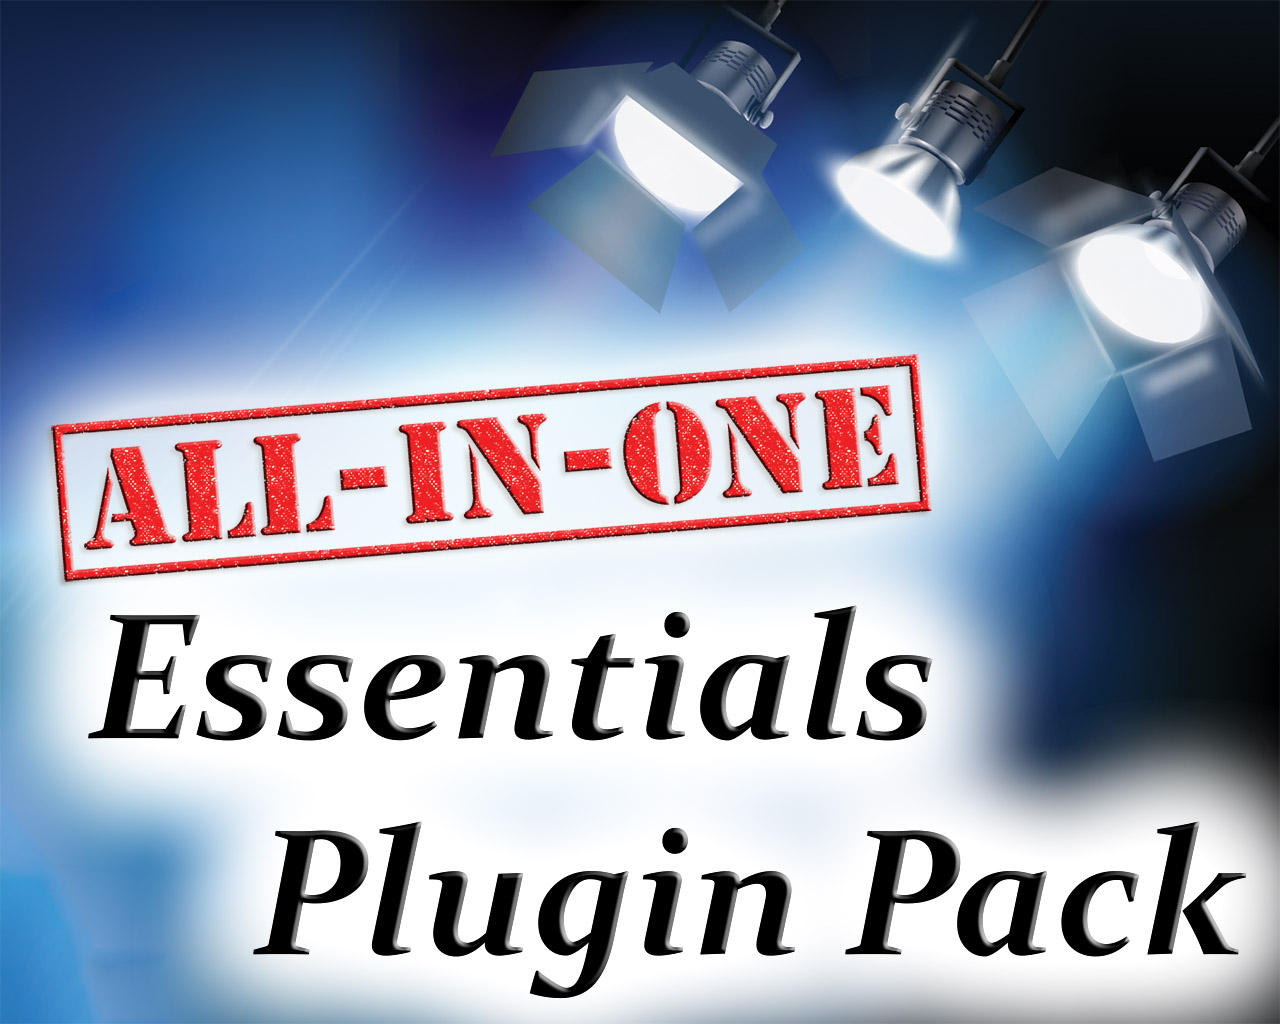 Essentials Plugin Pack: SEO, Google Analytics, Security, Speed & Backup Setup & more by Dimitris73 - 75785